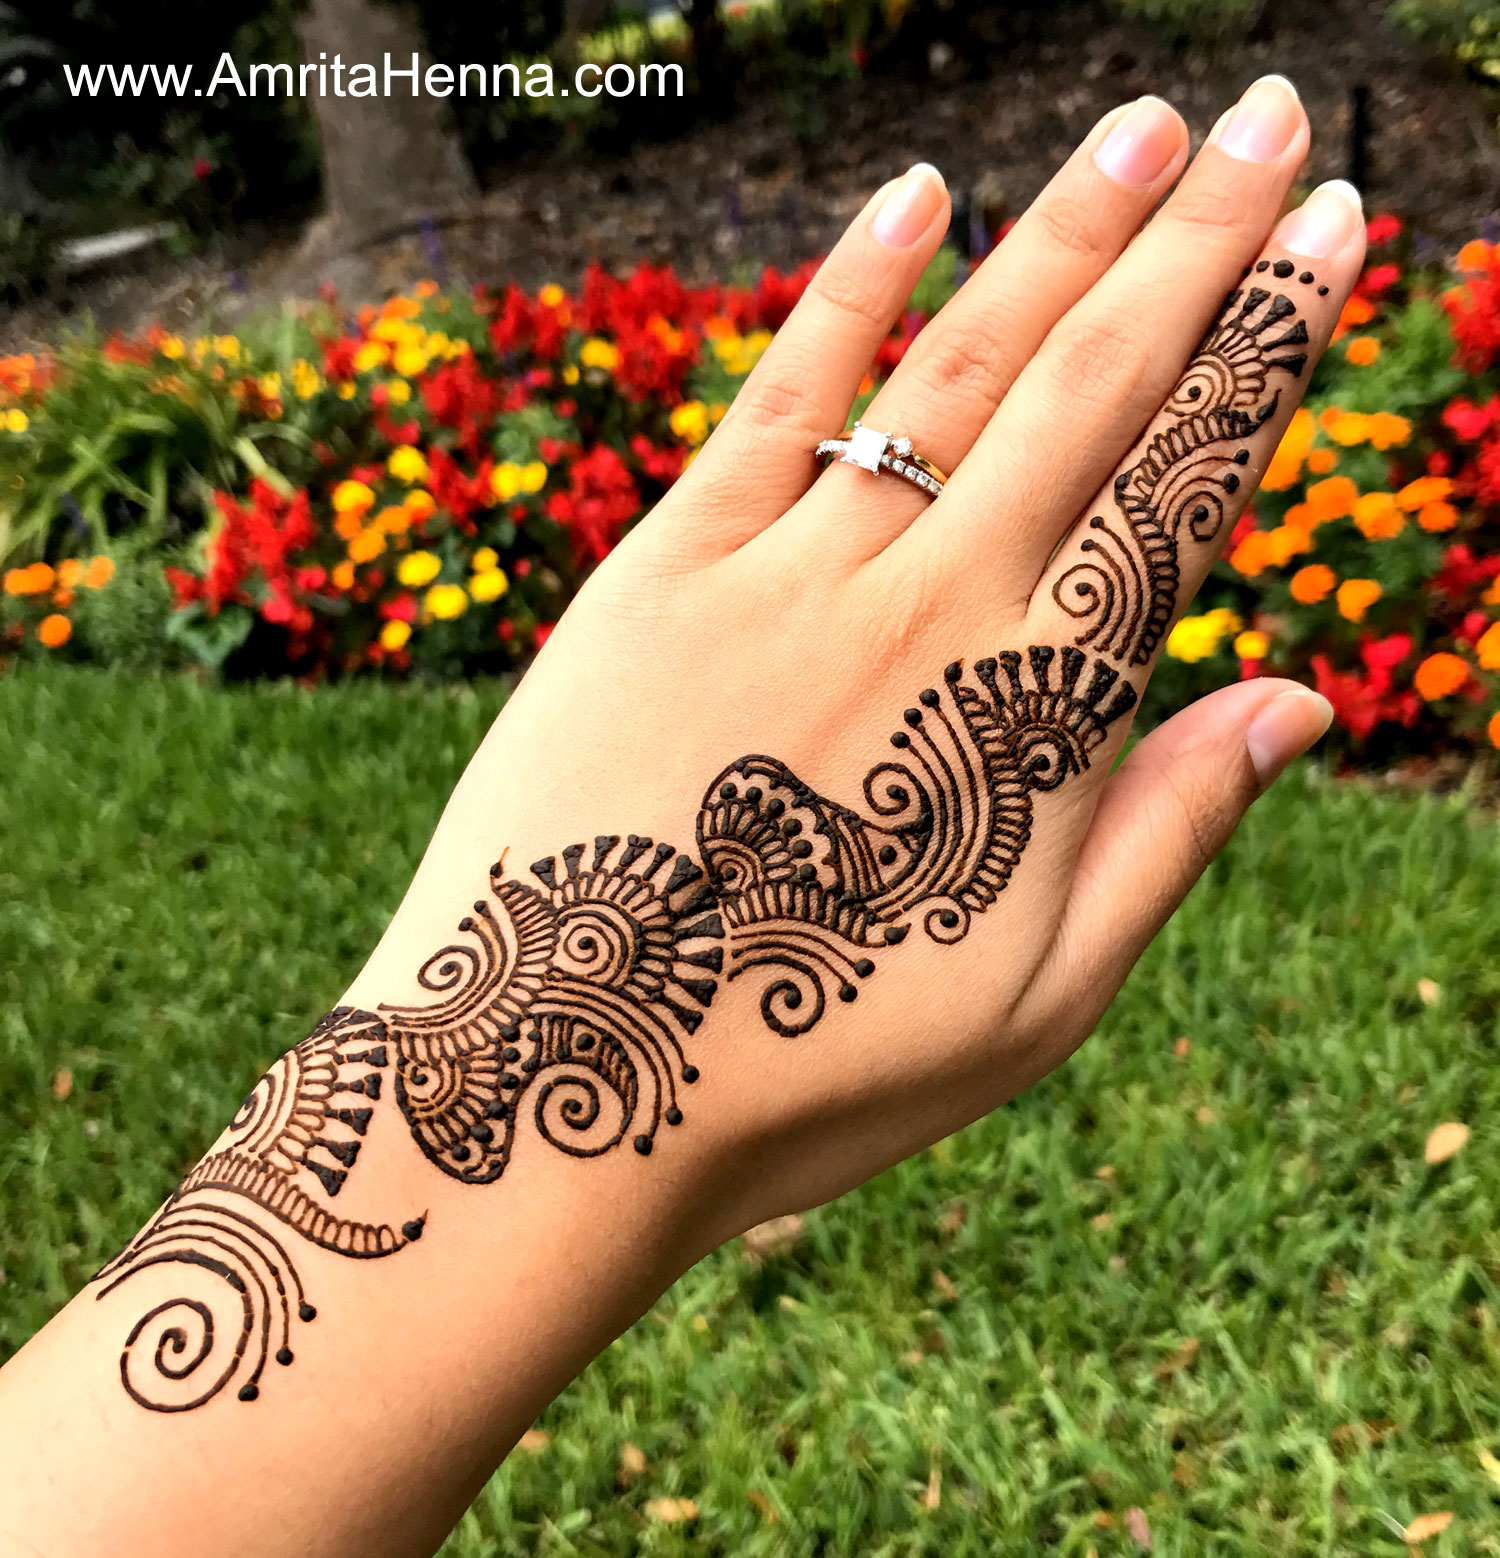 Top 10 Diy Easy And Quick 2 Minute Henna Designs Henna Tattoo